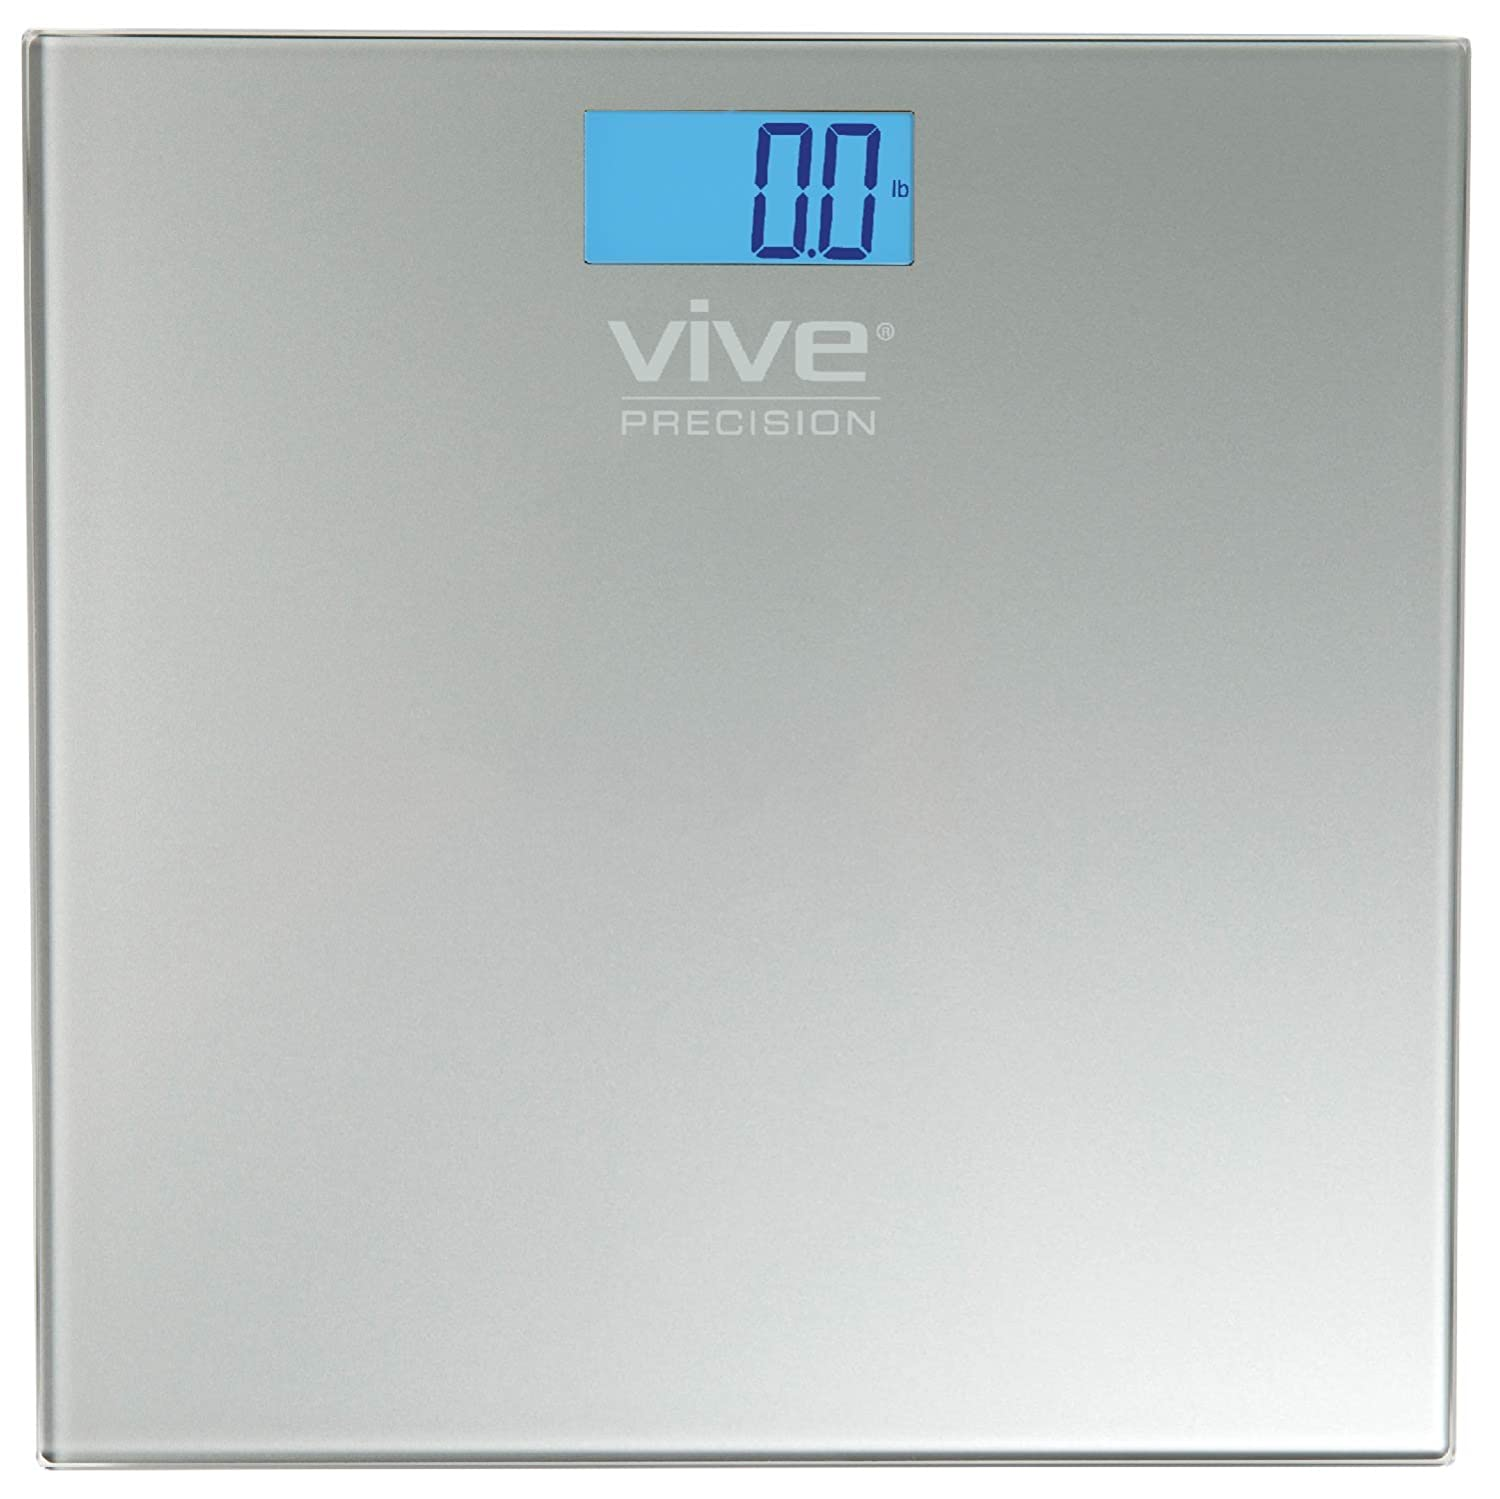 Bathroom scale accuracy consistency - Amazon Com Digital Bathroom Scale By Vive Precision Weight Scale Measuring Device Electronic Body Scale Easy To Read Backlit Display Accurate To 2